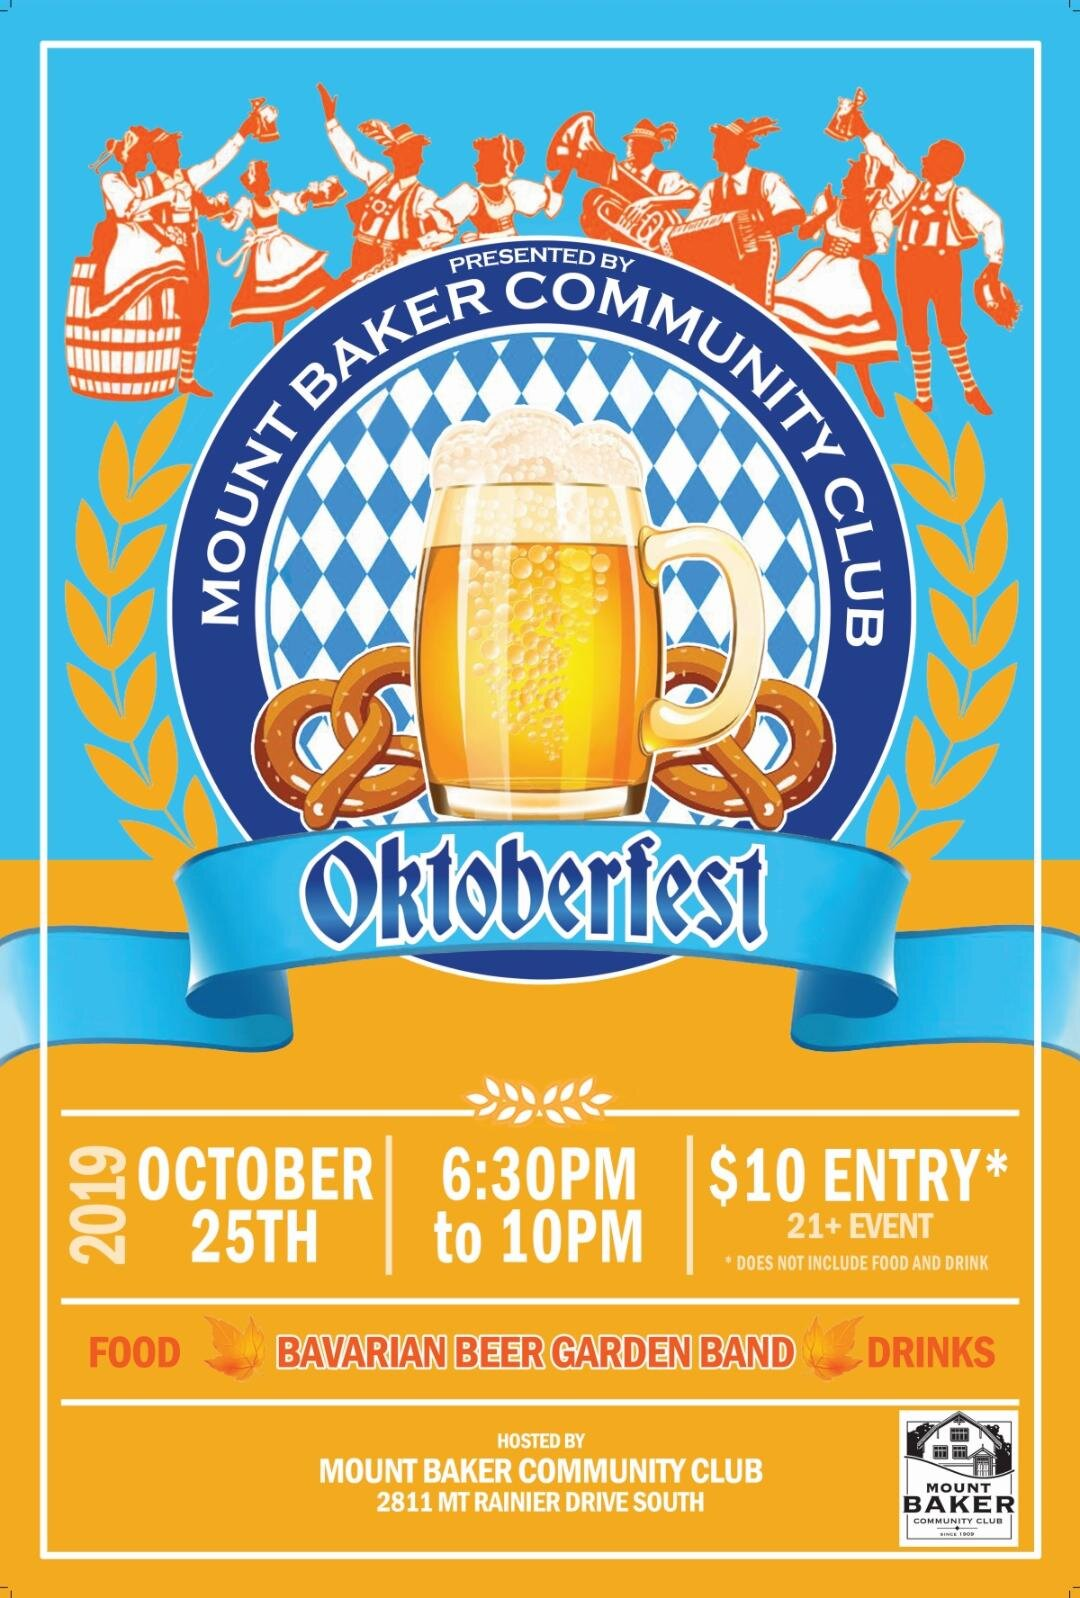 Oktoberfest Friday 25th October - We're bringing a bit of Bavaria to Mount Baker on Friday 25th October 2019.Tickets are just $10 for entry into the event and to enjoy live music from the Bavarian Beer Garden Band. Buy now HEREDoors open at 6.30pm and we finish around 10pm. The event is strictly 21 and over -please bring ID with you. Full details HERESo end your week with a fun night with friends and neighbors.Prost!!